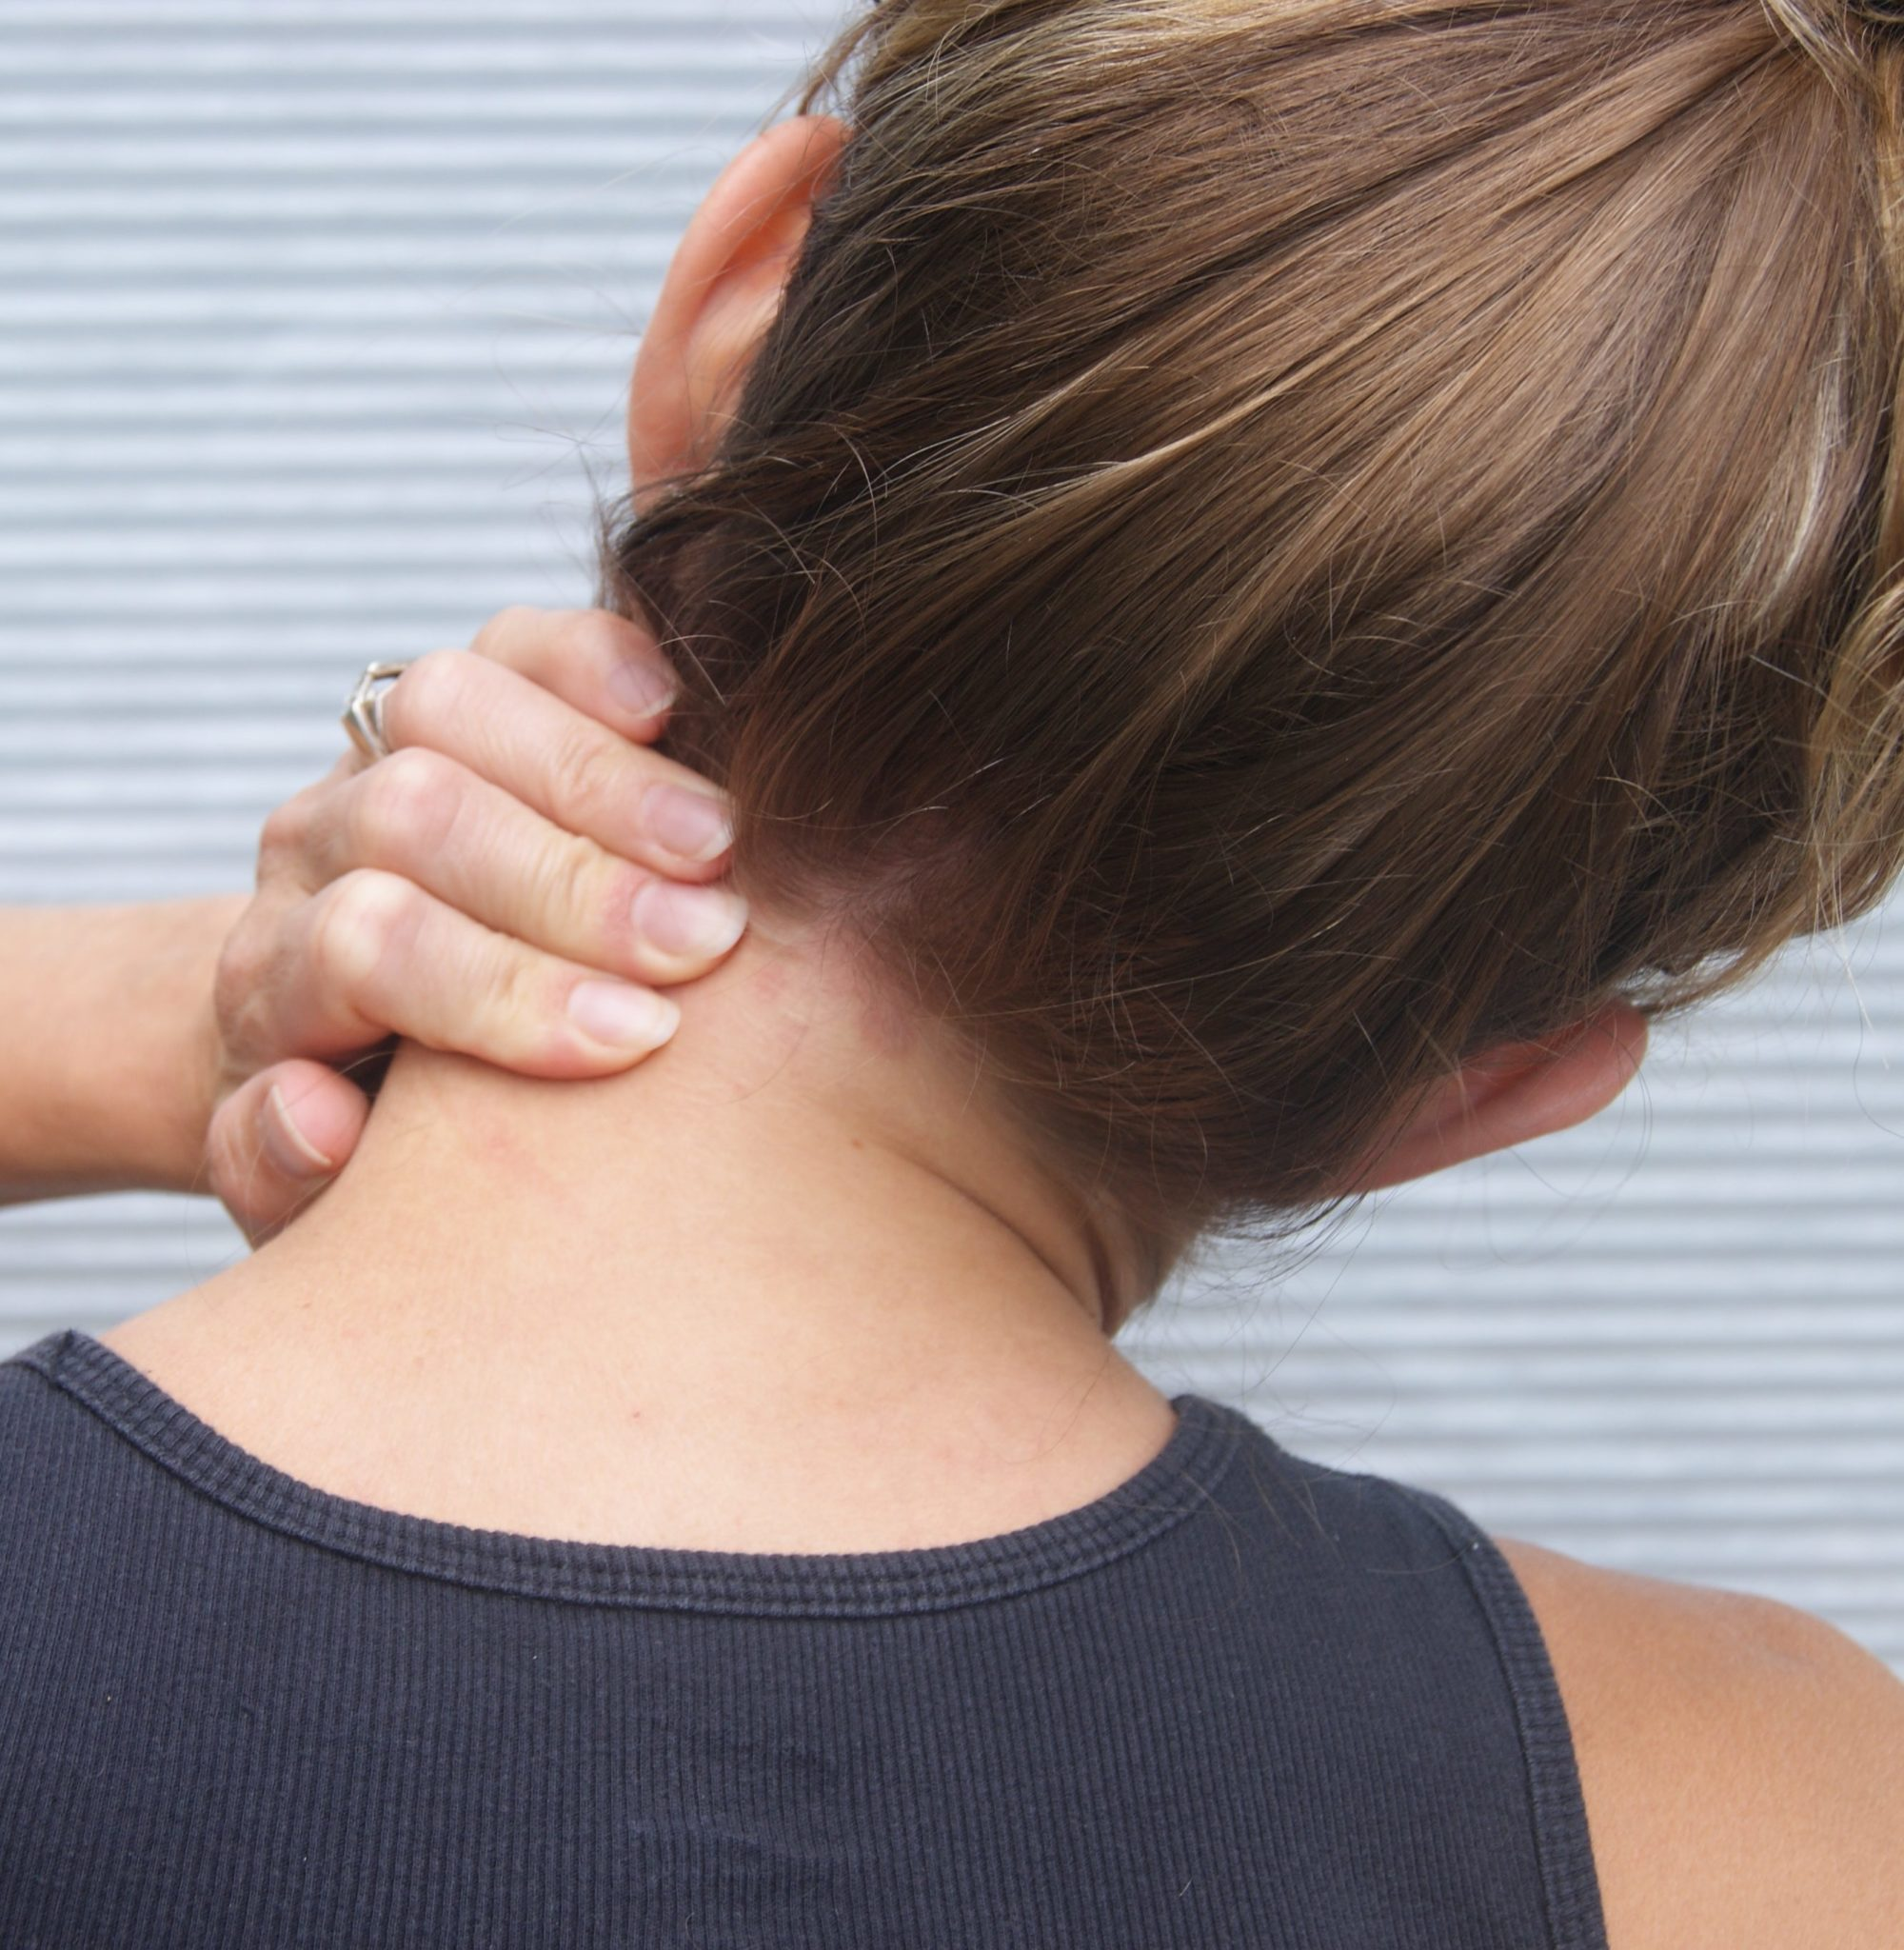 Acute Wry Neck Pivotal Motion Physiotherapy